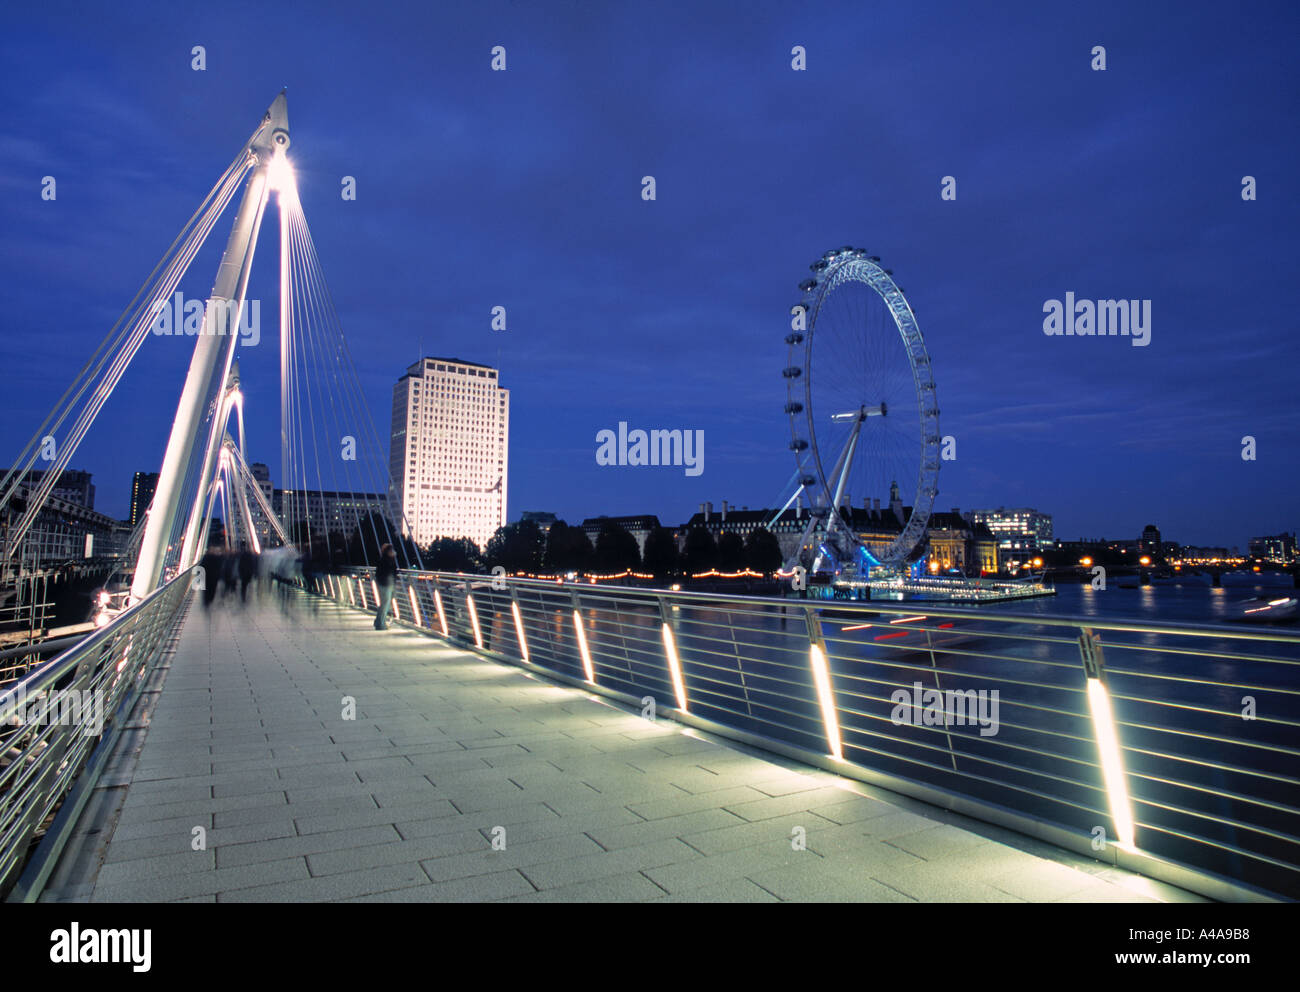 Hungerford Bridge, London, England - Stock Image